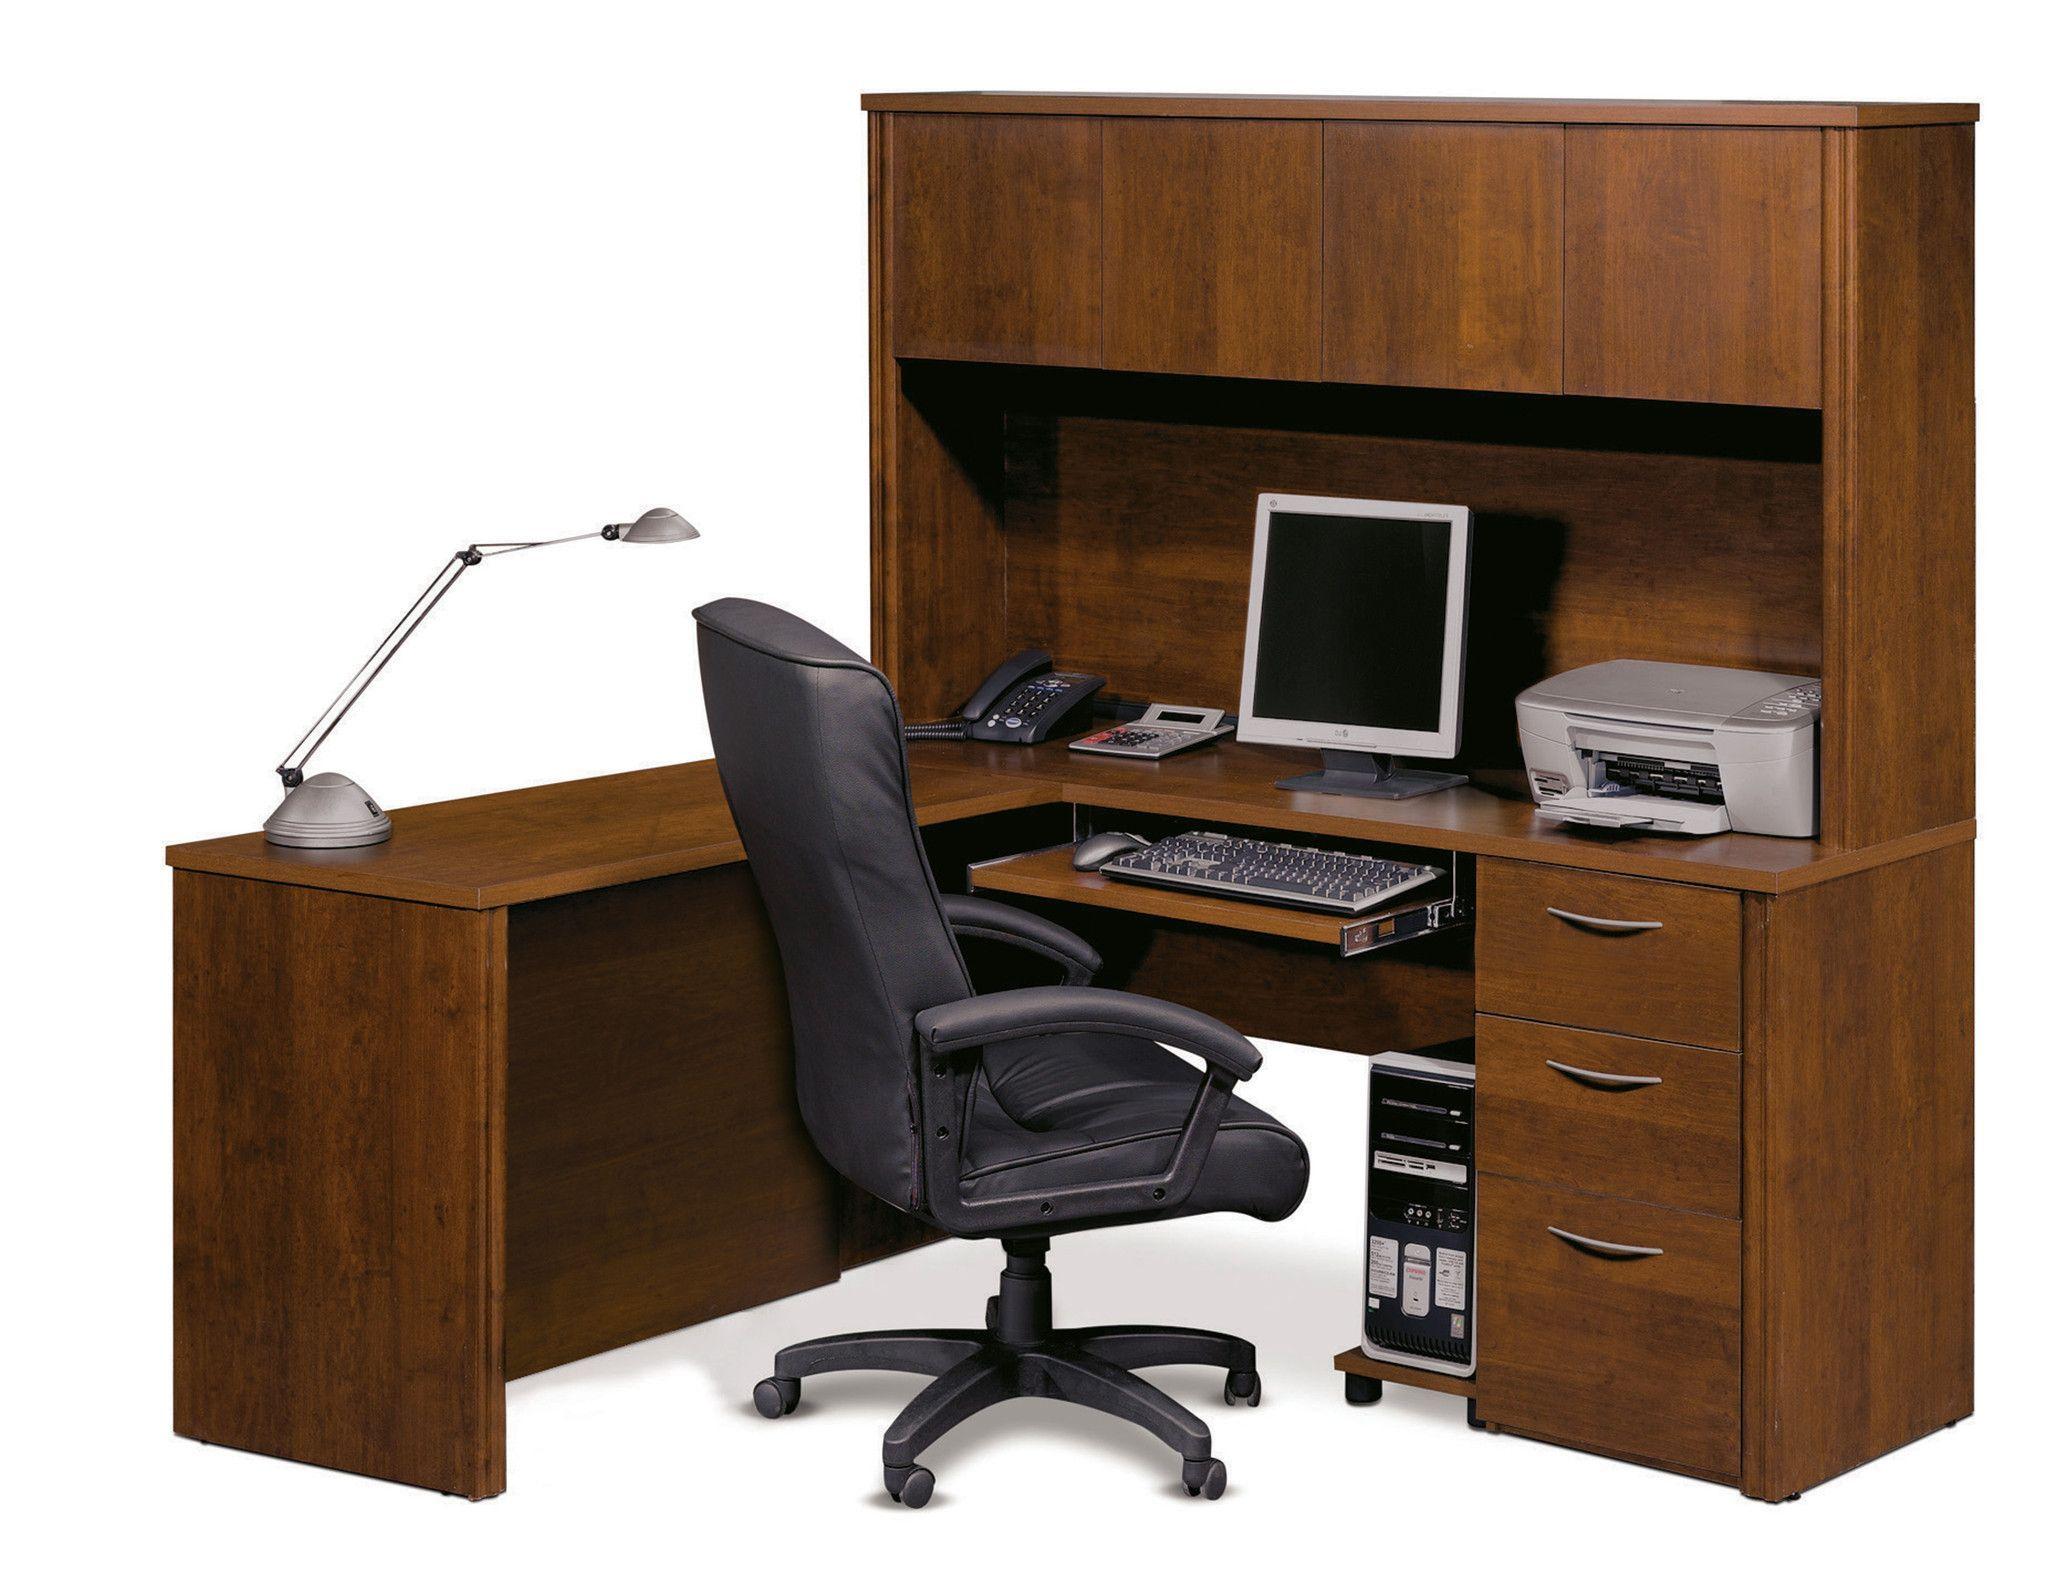 Elegant L Shaped Premium Office Desk With Hutch In Tuscany Brown